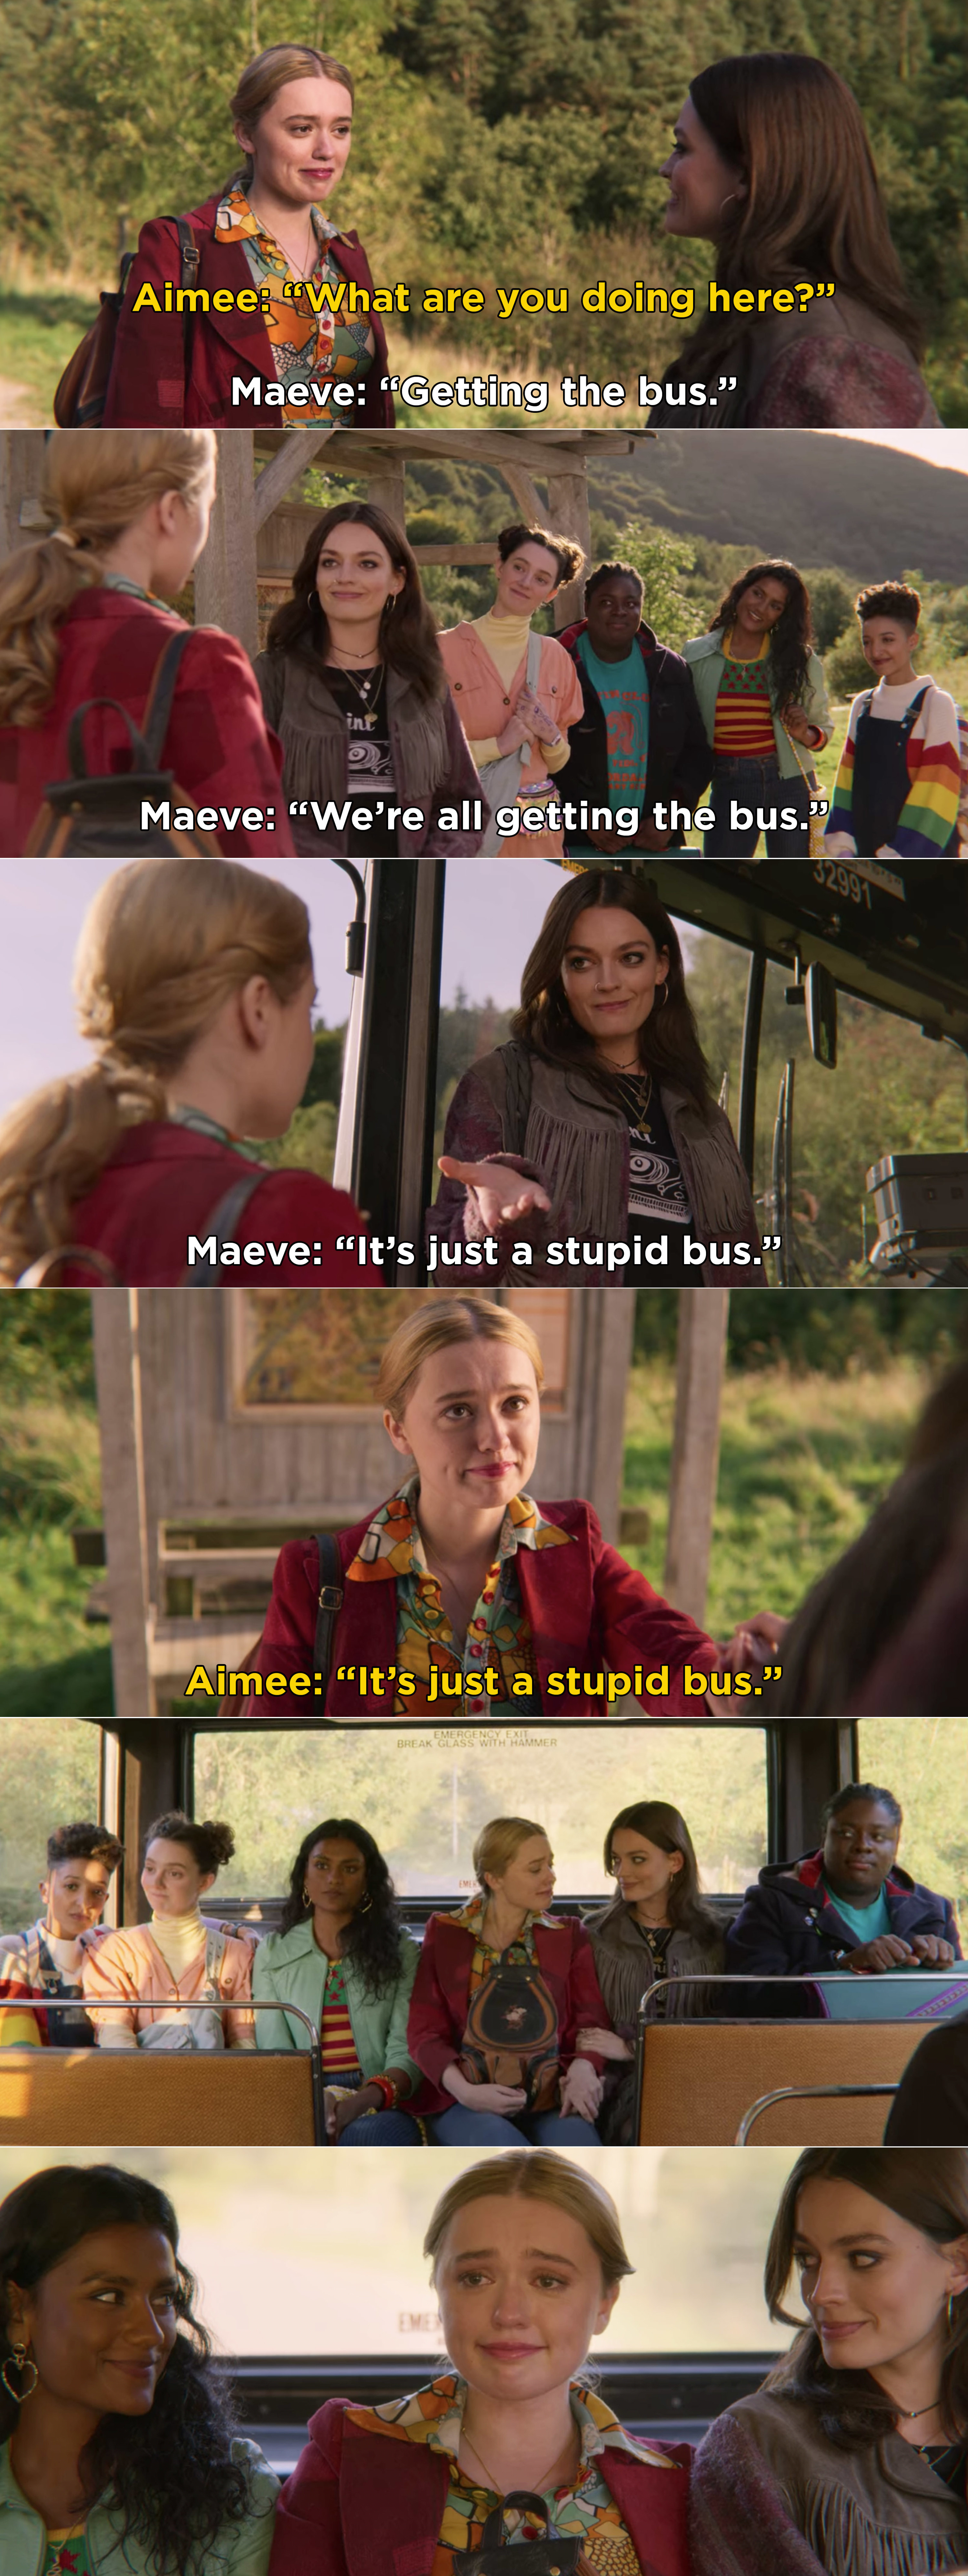 Maeve telling Aimee that they are all getting on the bus